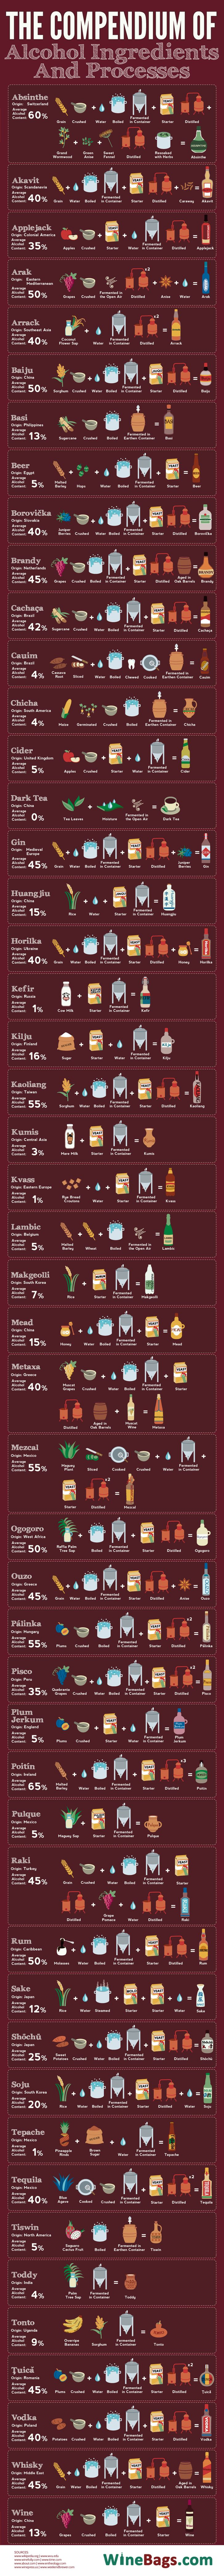 How some of the most popular alcoholic drinks around the world are made